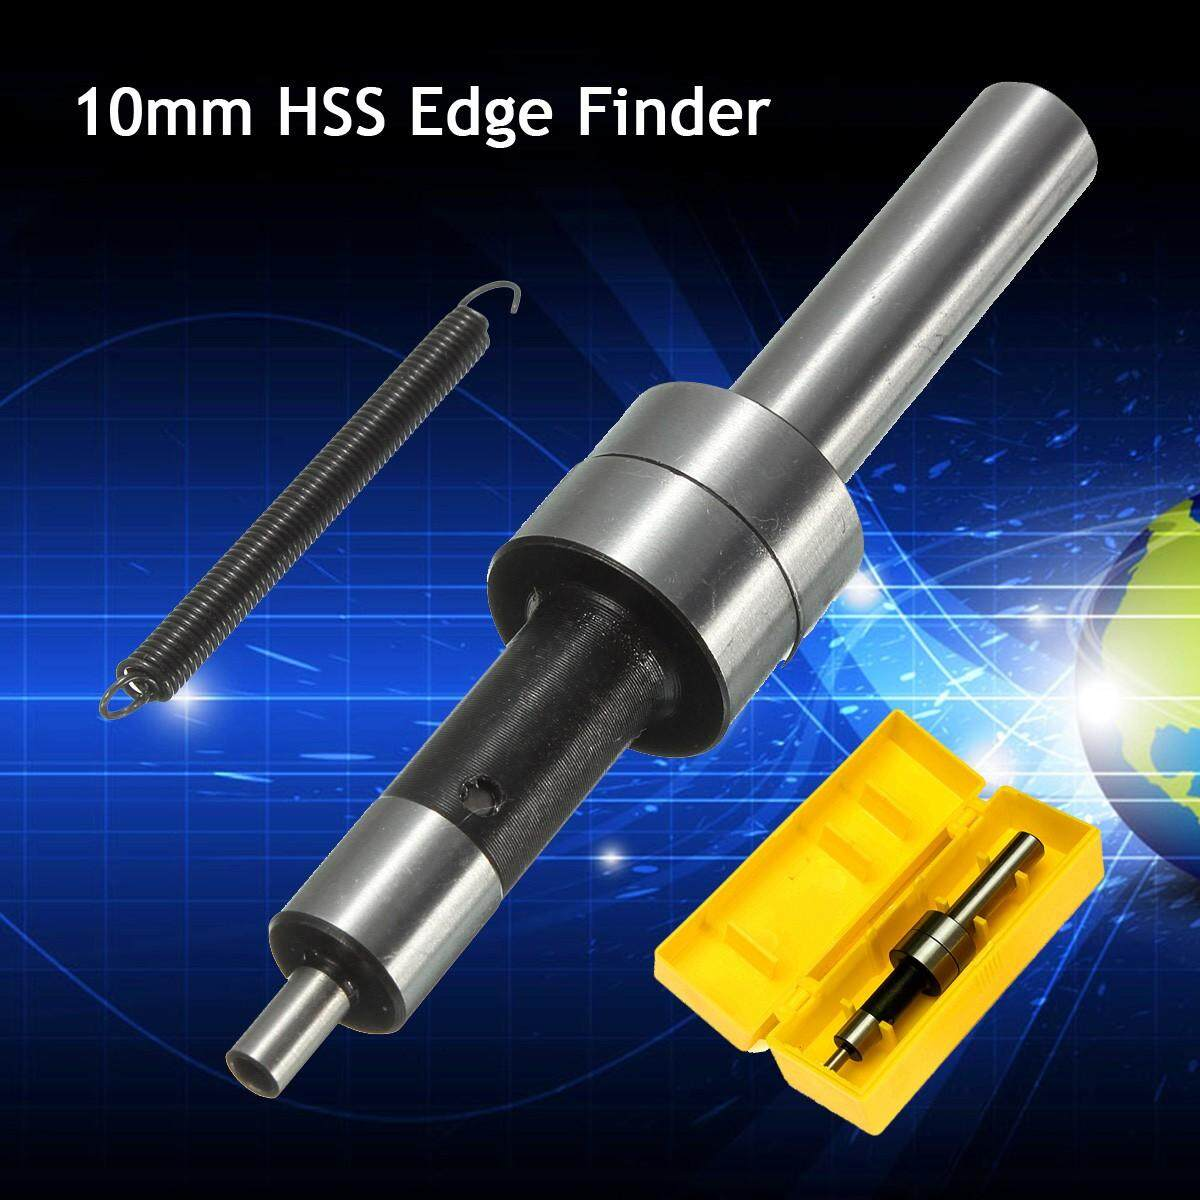 new 1pcs Edge Finder Shank 10mm /& Tip 4mm for CNC Machine Milling